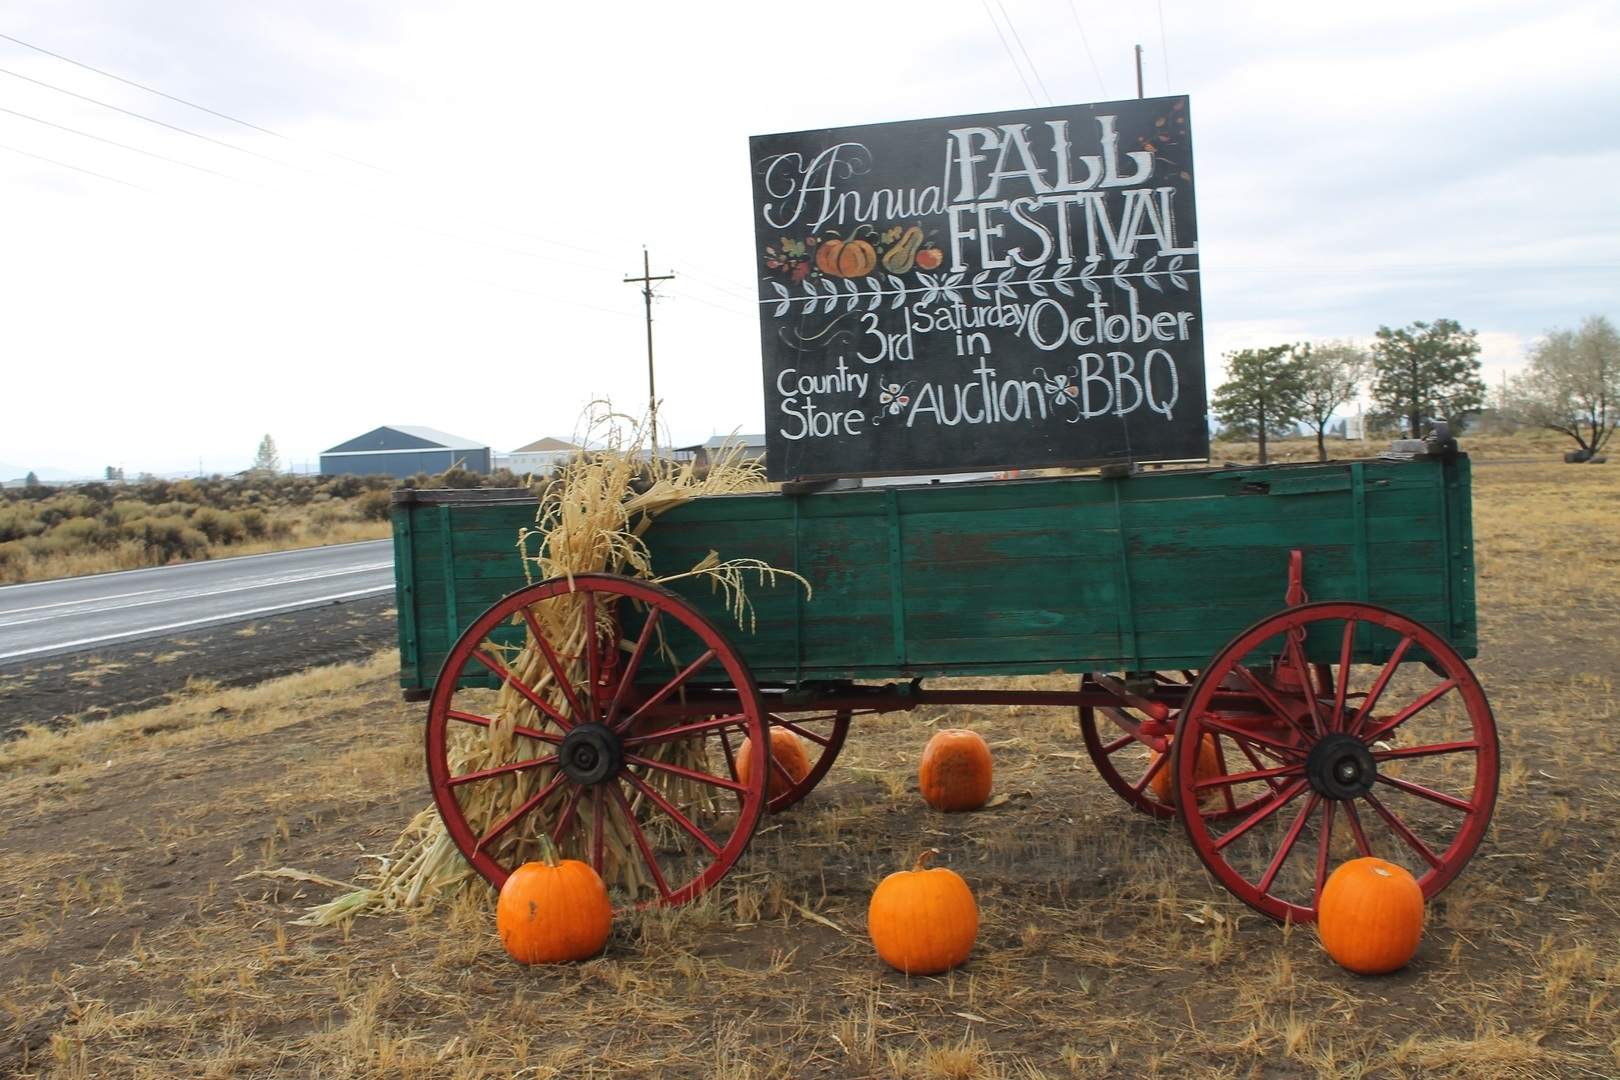 28th Annual Fall Festival & Auction - Saturday October 16th